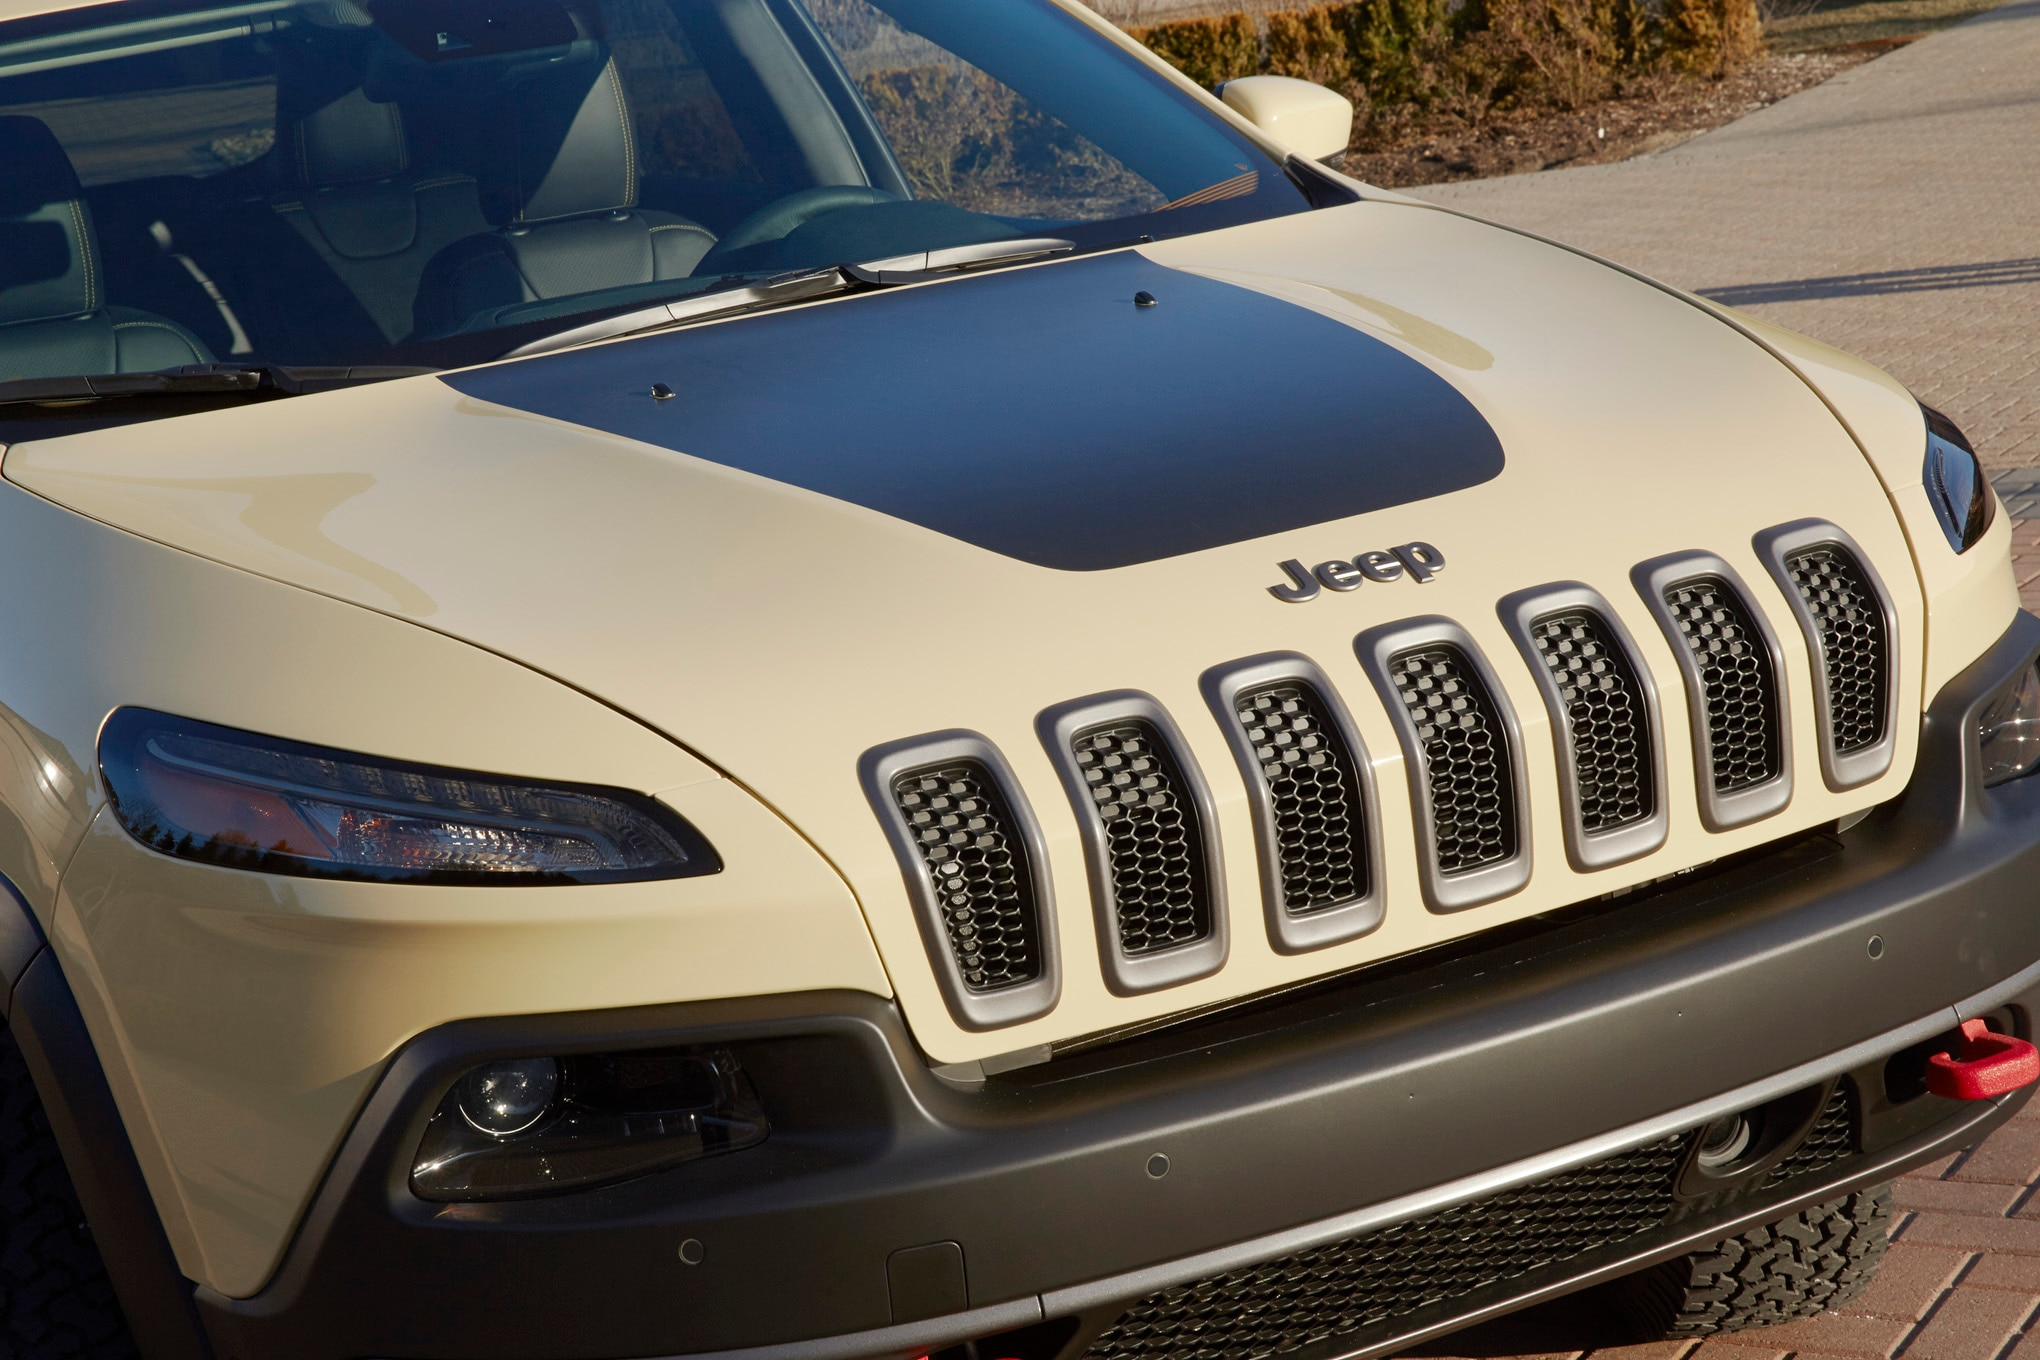 Jeep Cherokee Adventurer Concept front end